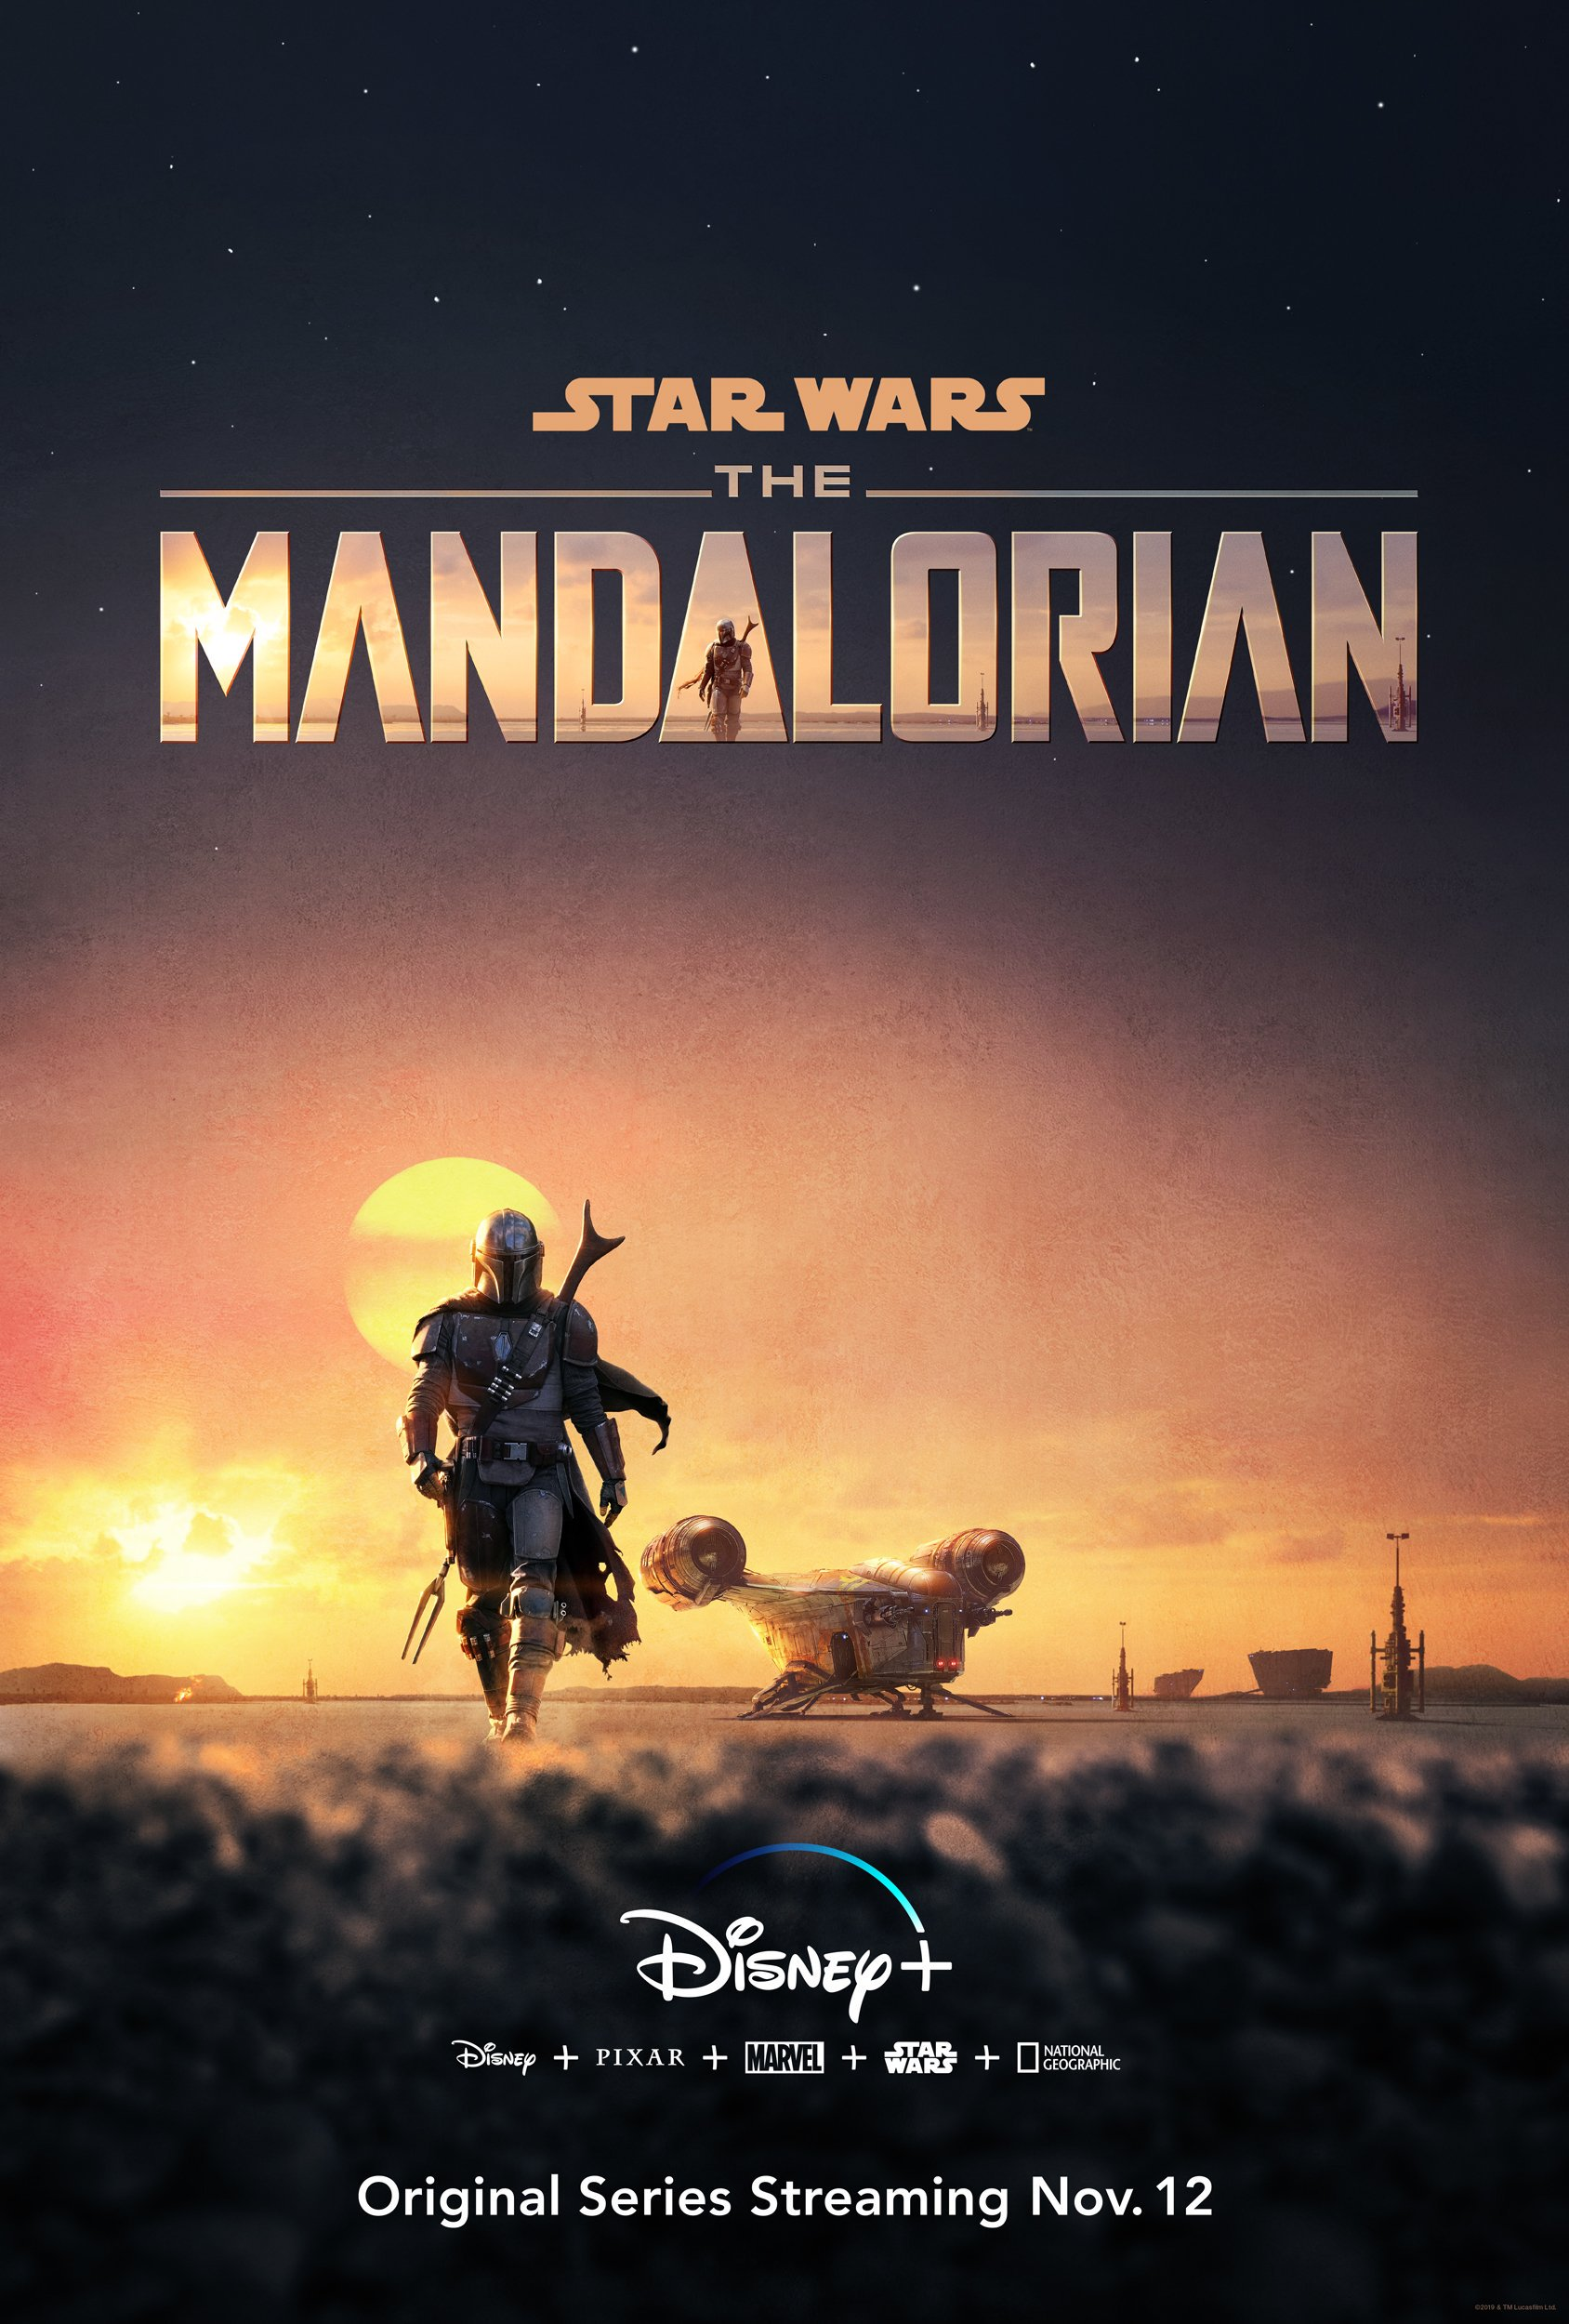 Disney Plus' The Mandalorian trailer shows a new side of the Star Wars universe